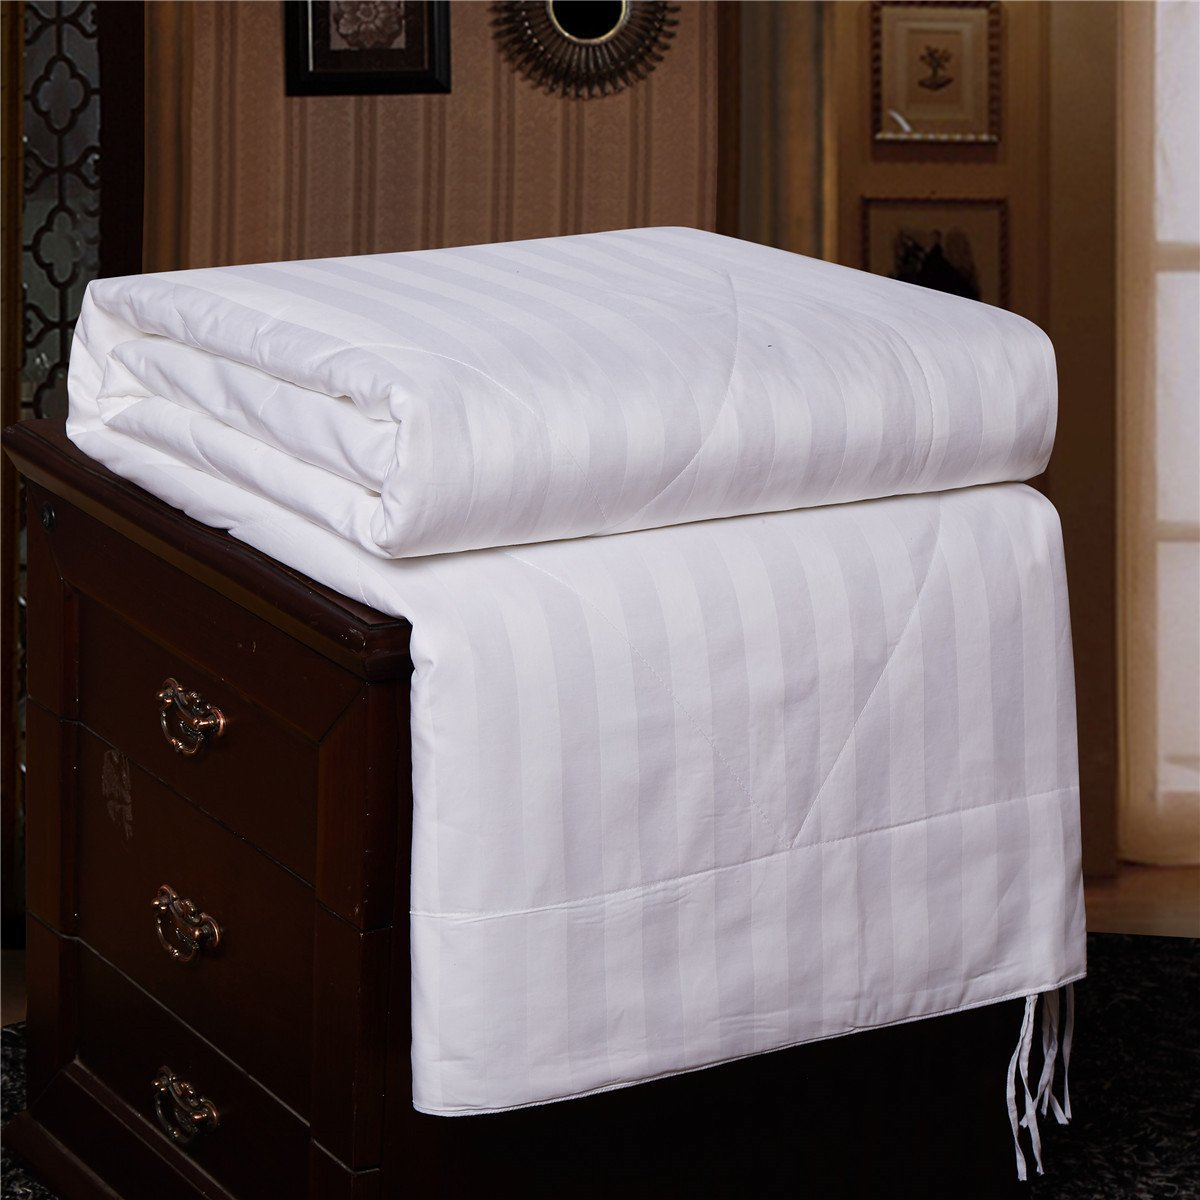 7 summer blankets and sheets that will keep you cool but comfy. Black Bedroom Furniture Sets. Home Design Ideas